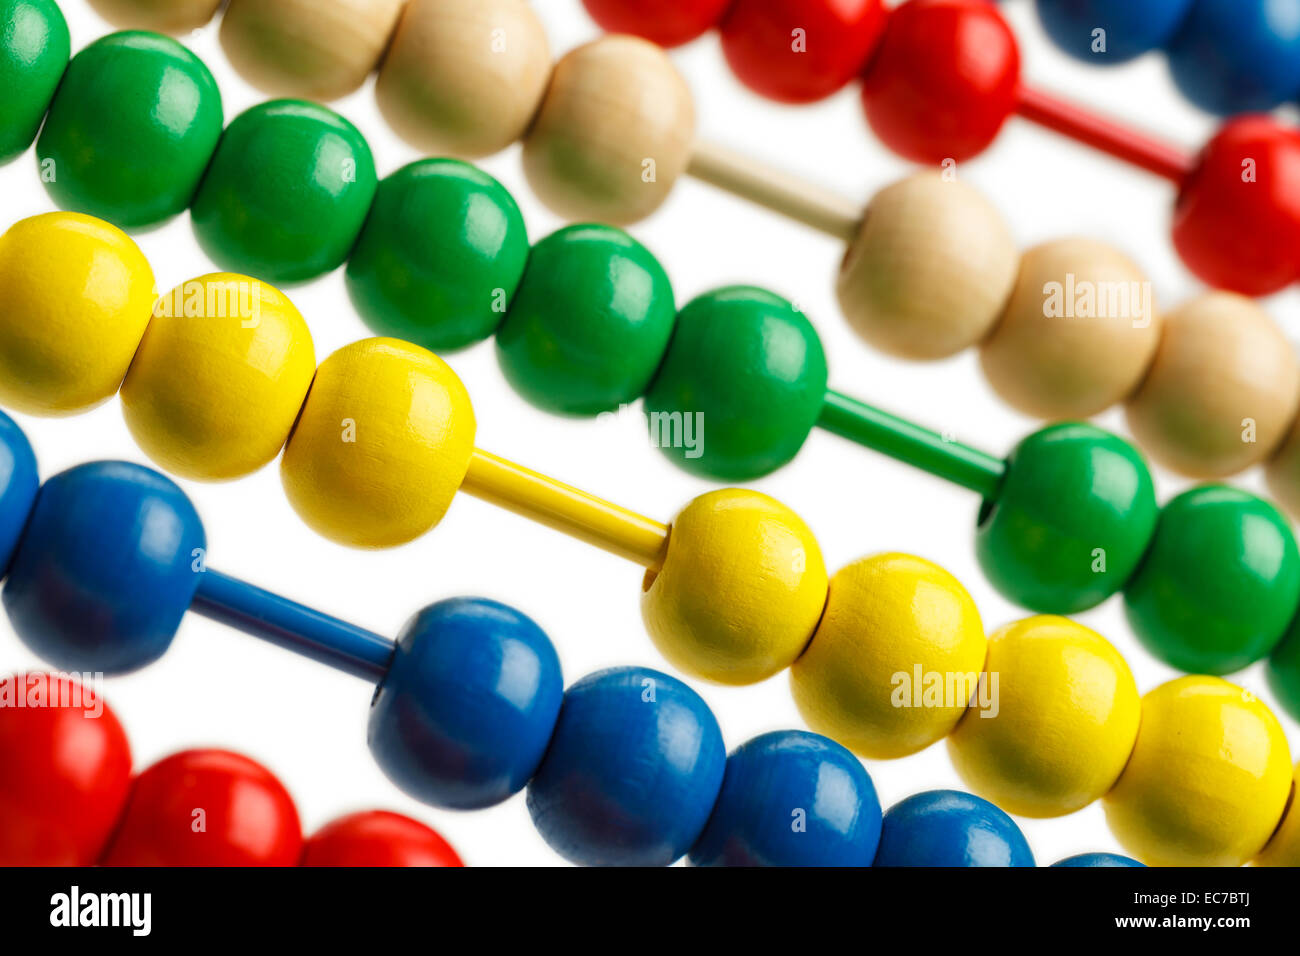 Colored Abacus Beads Sorted Close Up View. - Stock Image